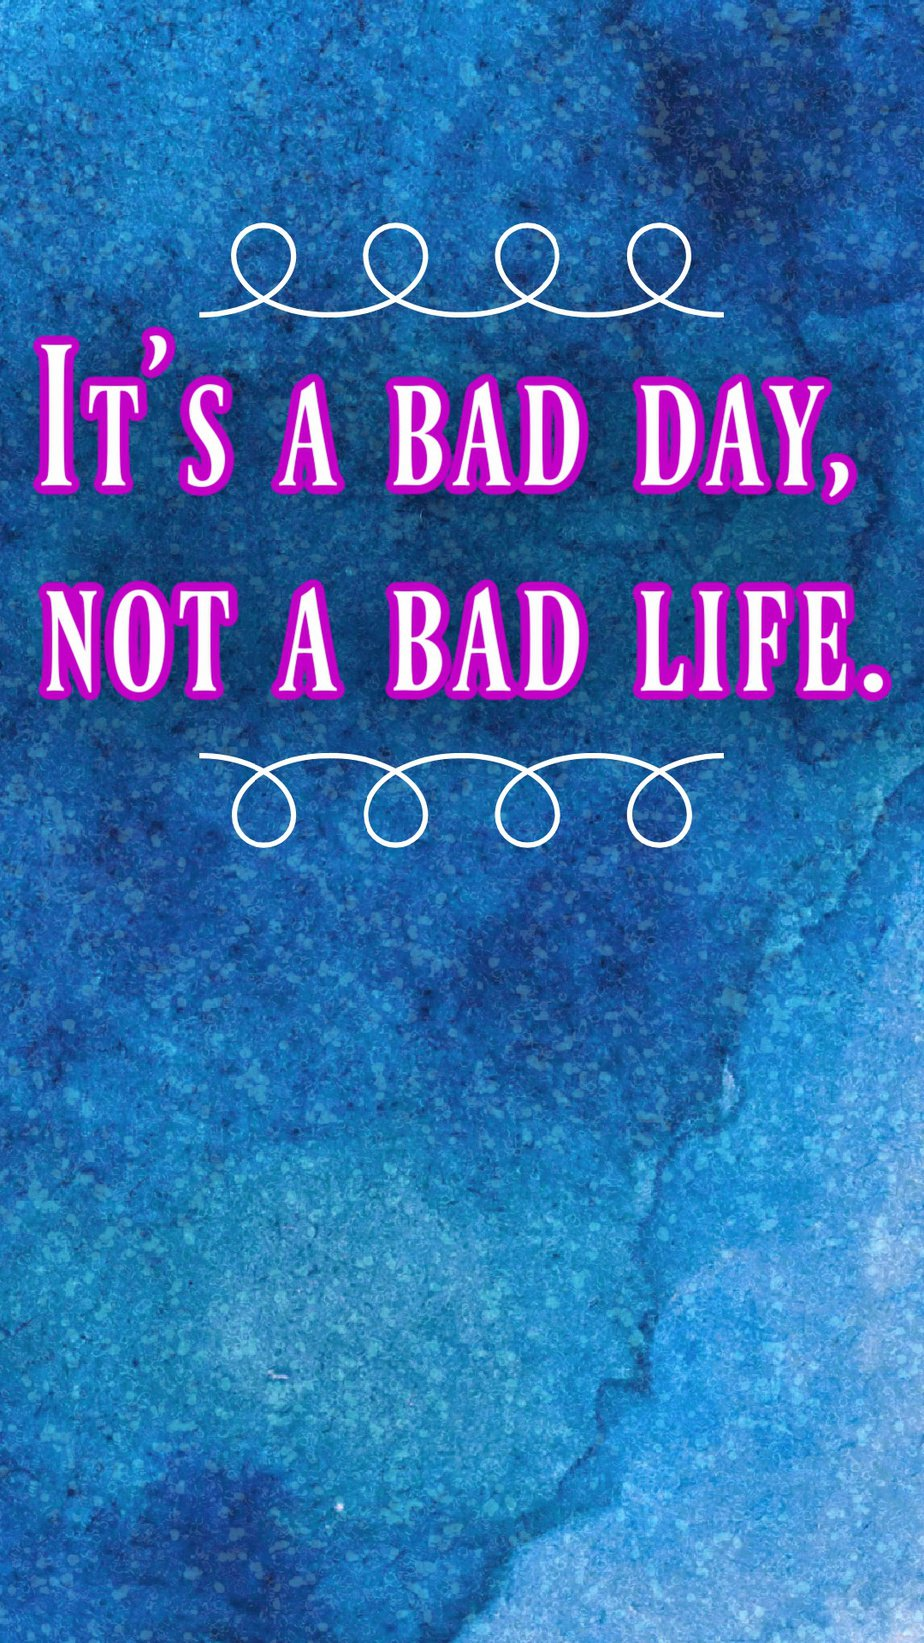 Best Aesthetic Phone Wallpaper Quotes About Bad Days It's a bad day, not a bad life